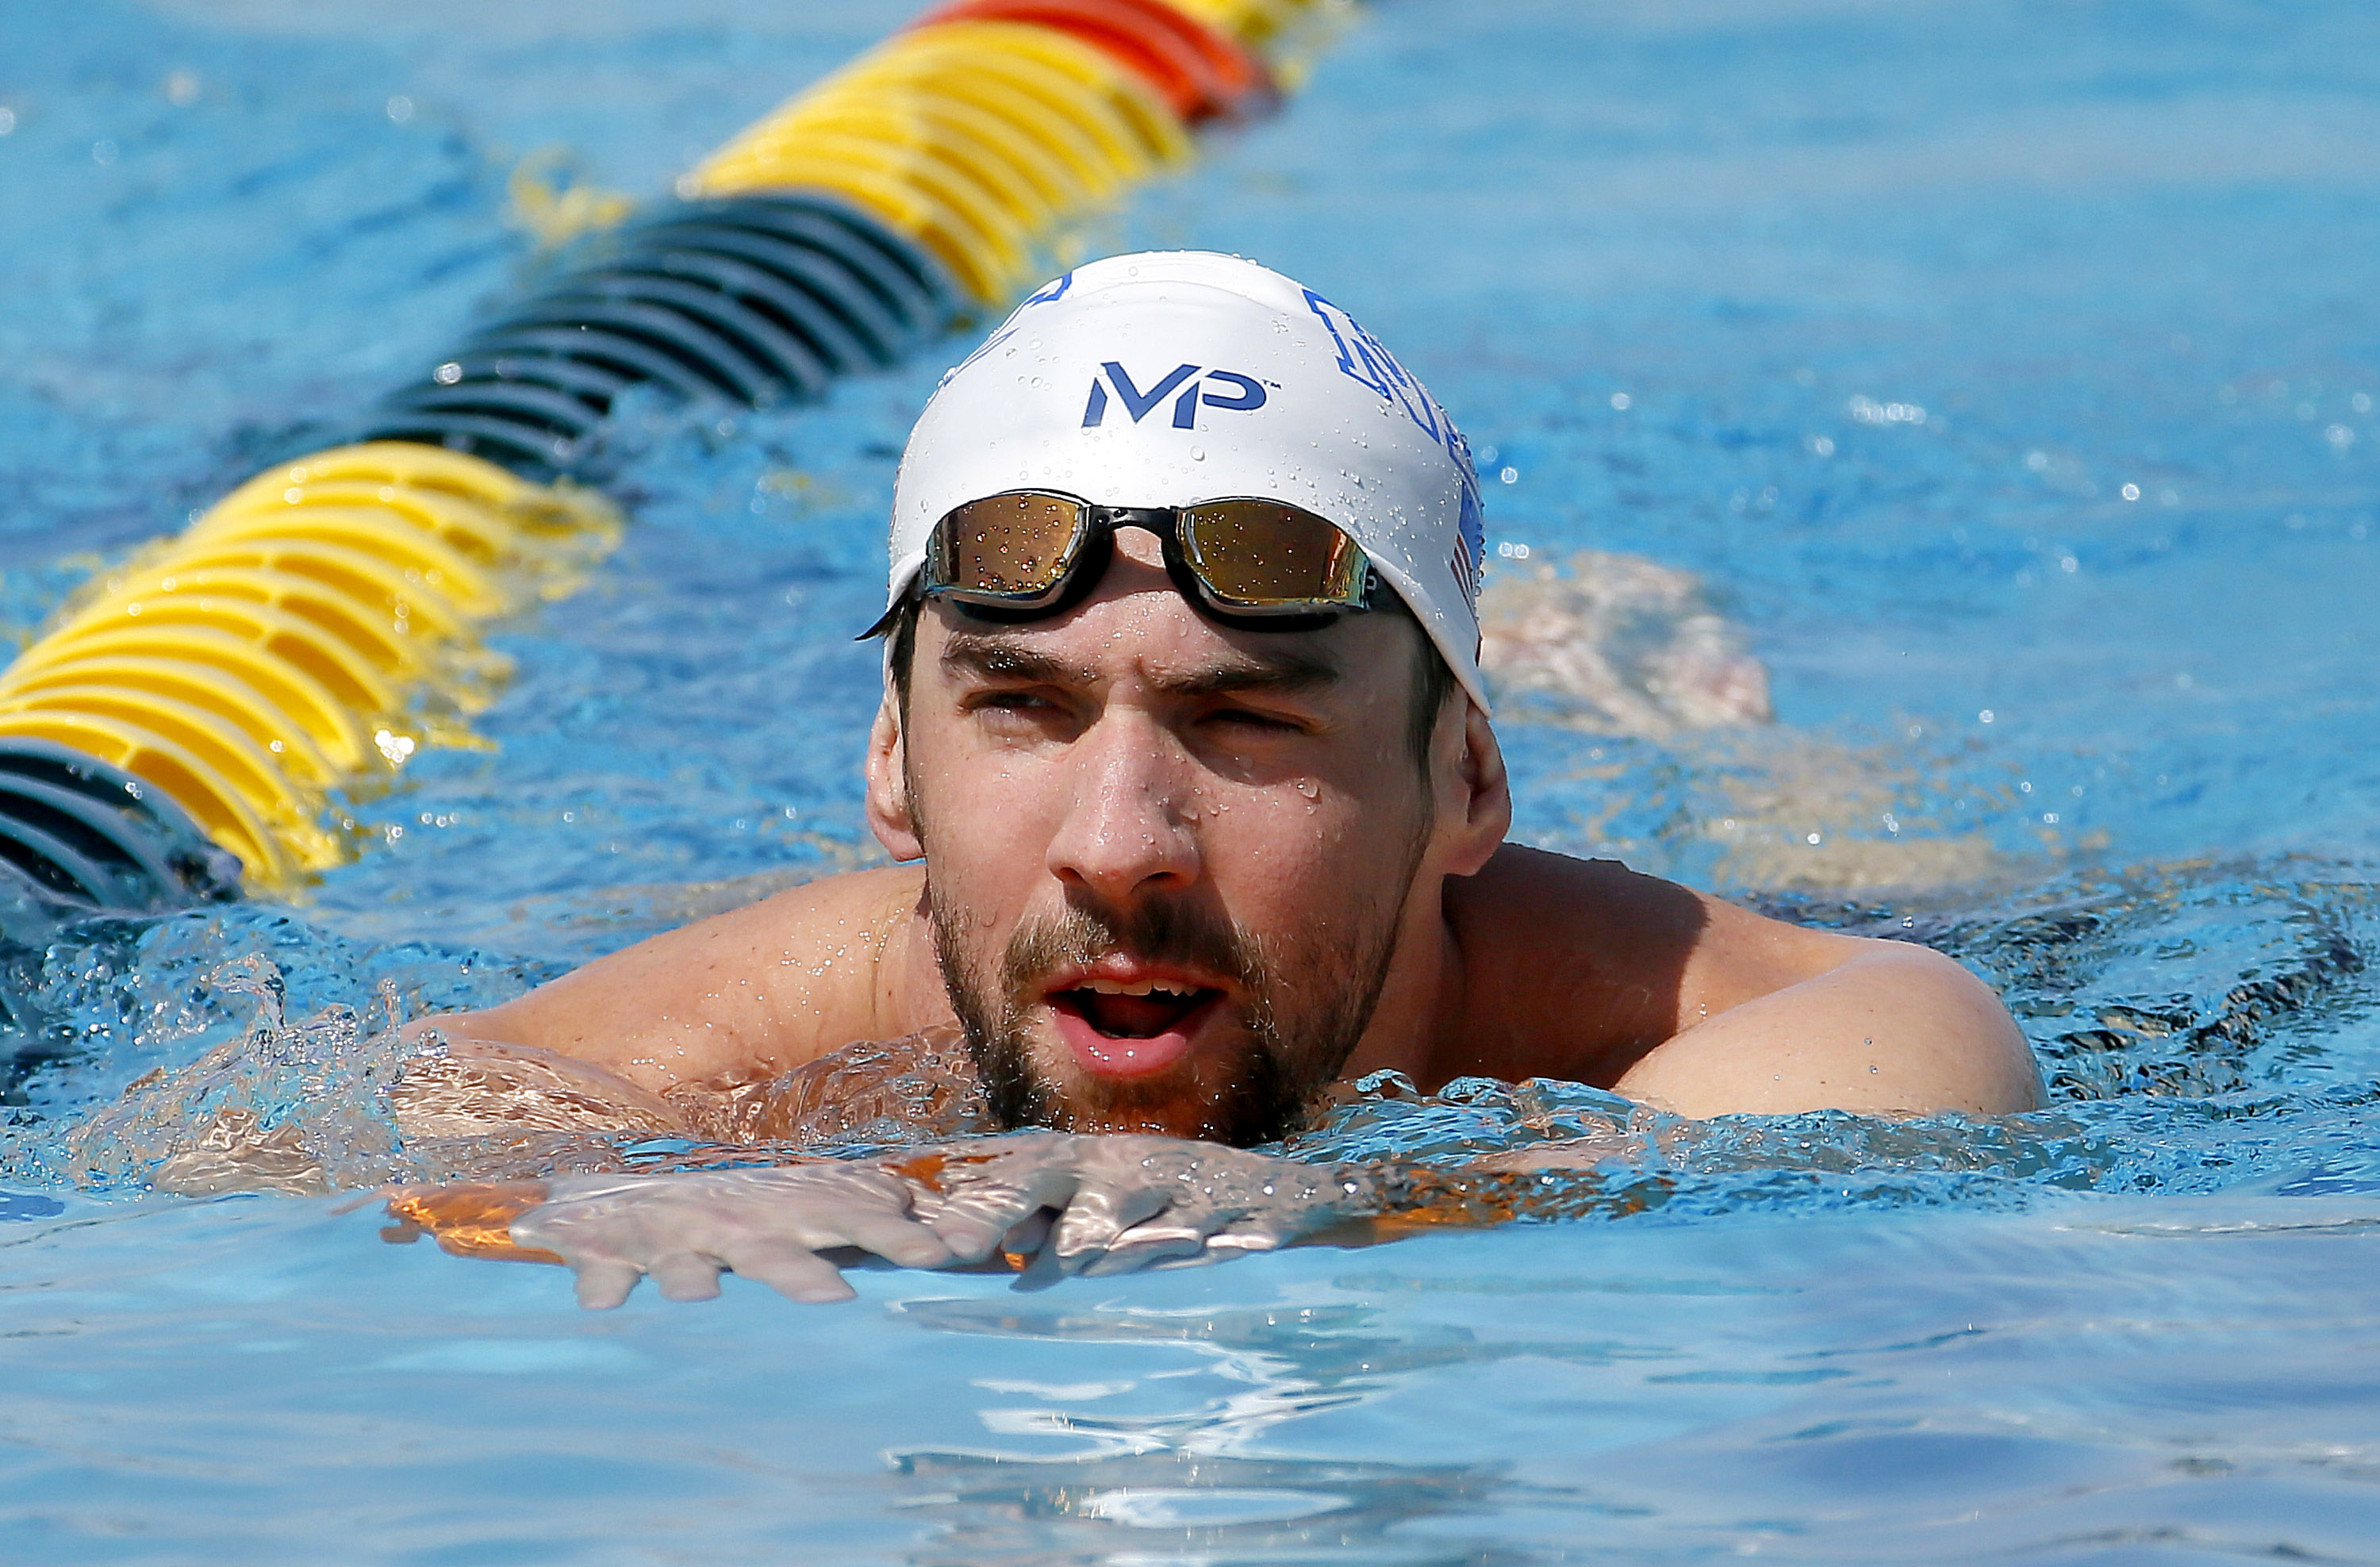 Michael Phelps during a practice session in Mesa, Ariz. on April 15, 2015.